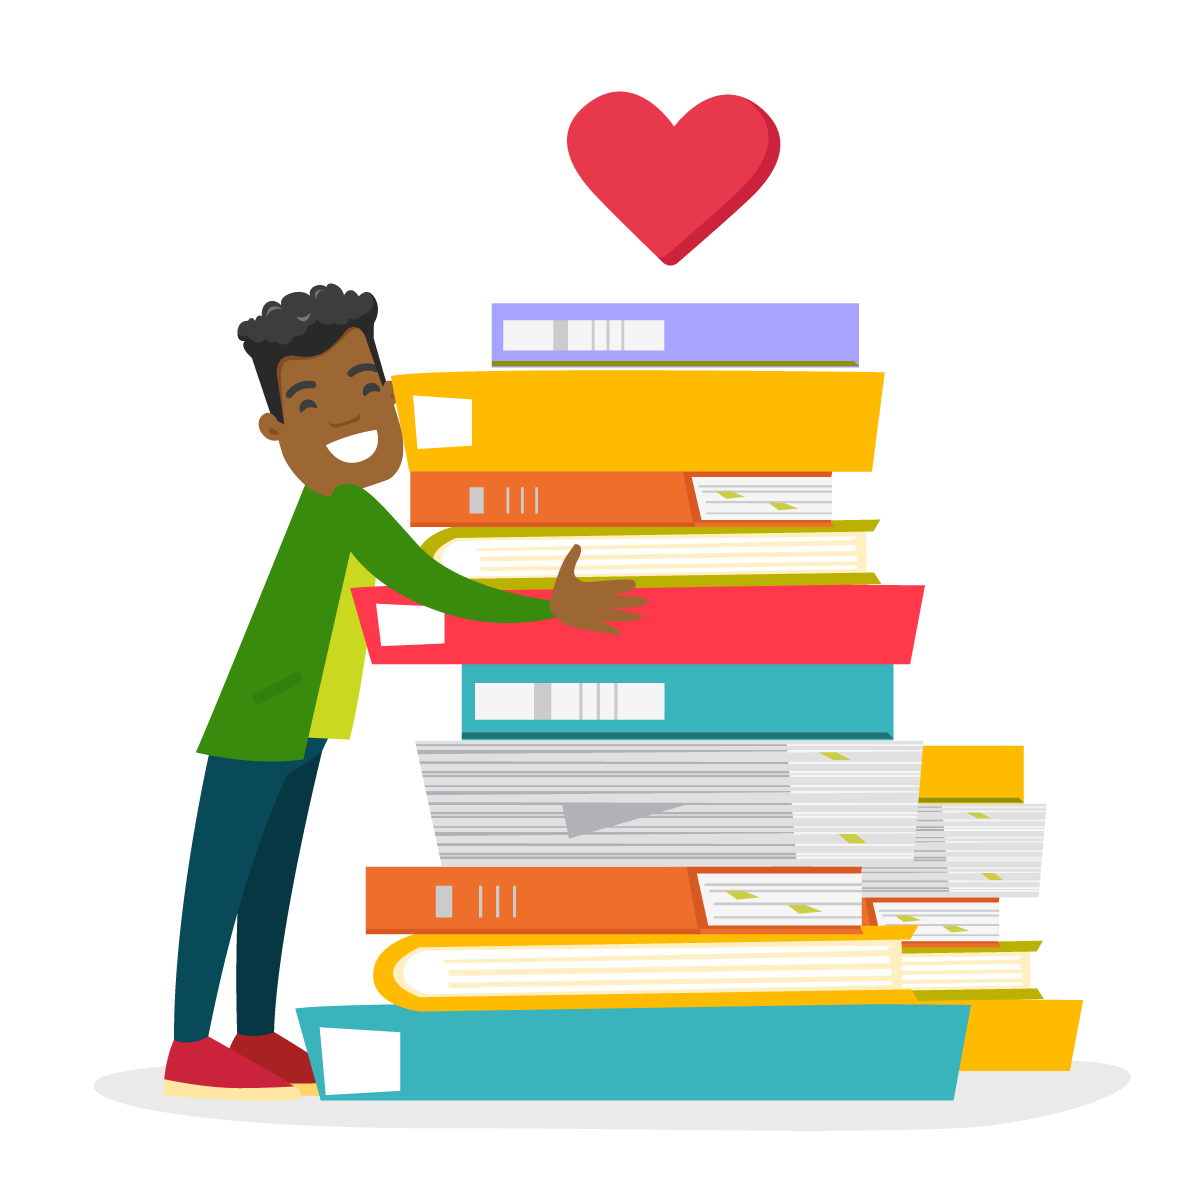 Illustration of boy hugging a pile of books with a heart floating over the books